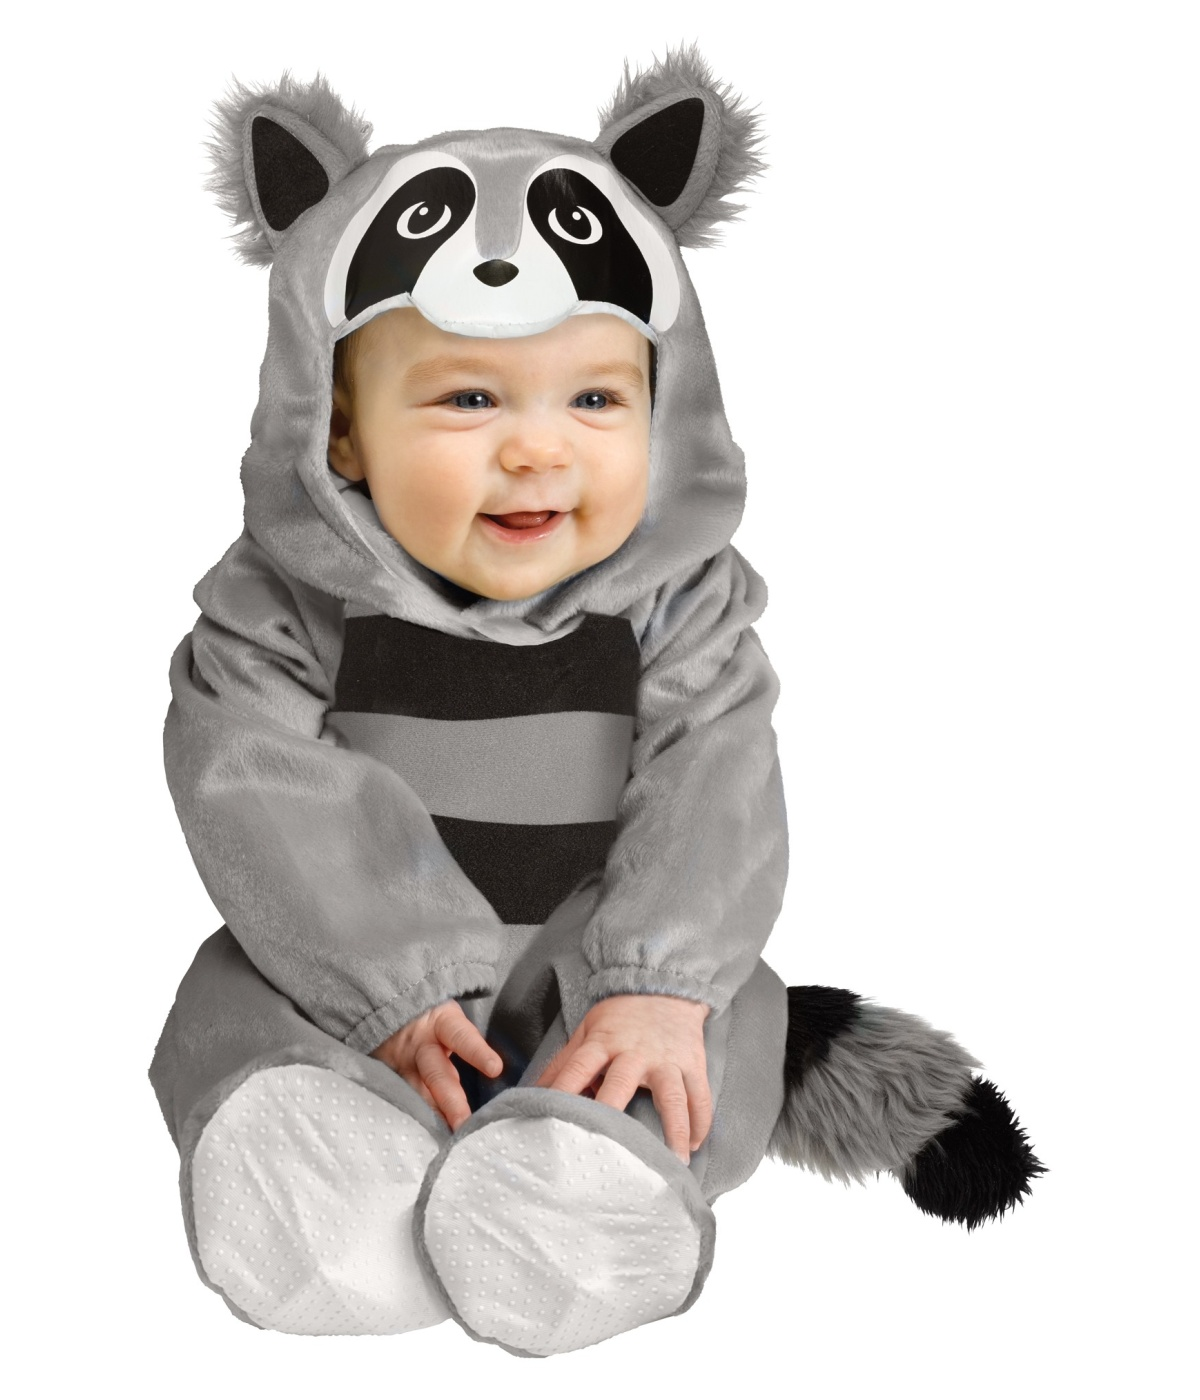 Shop Target for Baby Halloween Costumes you will love at great low prices. Free shipping on orders of $35+ or free same-day pick-up in store. Boy Costumes. Girl Costumes. Gender-Neutral Costumes. Action Hero Costumes Target has scary-cute baby costumes to help get your little one dressed up for the big night. Our infant costumes .